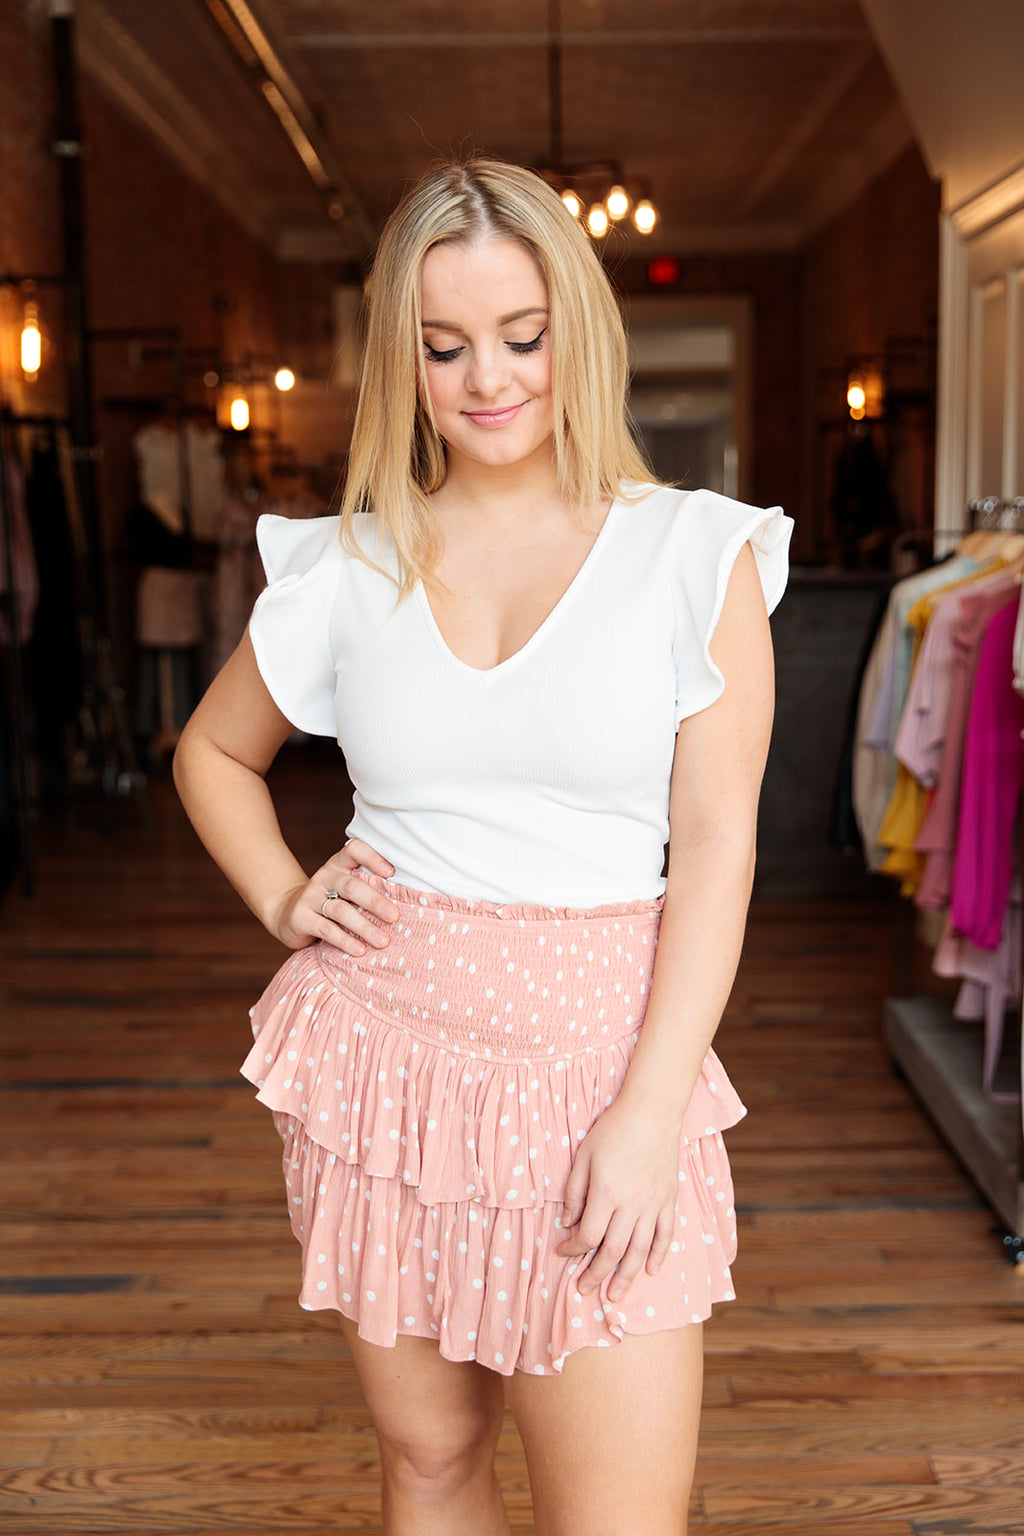 Peach Polka Dot Skirt